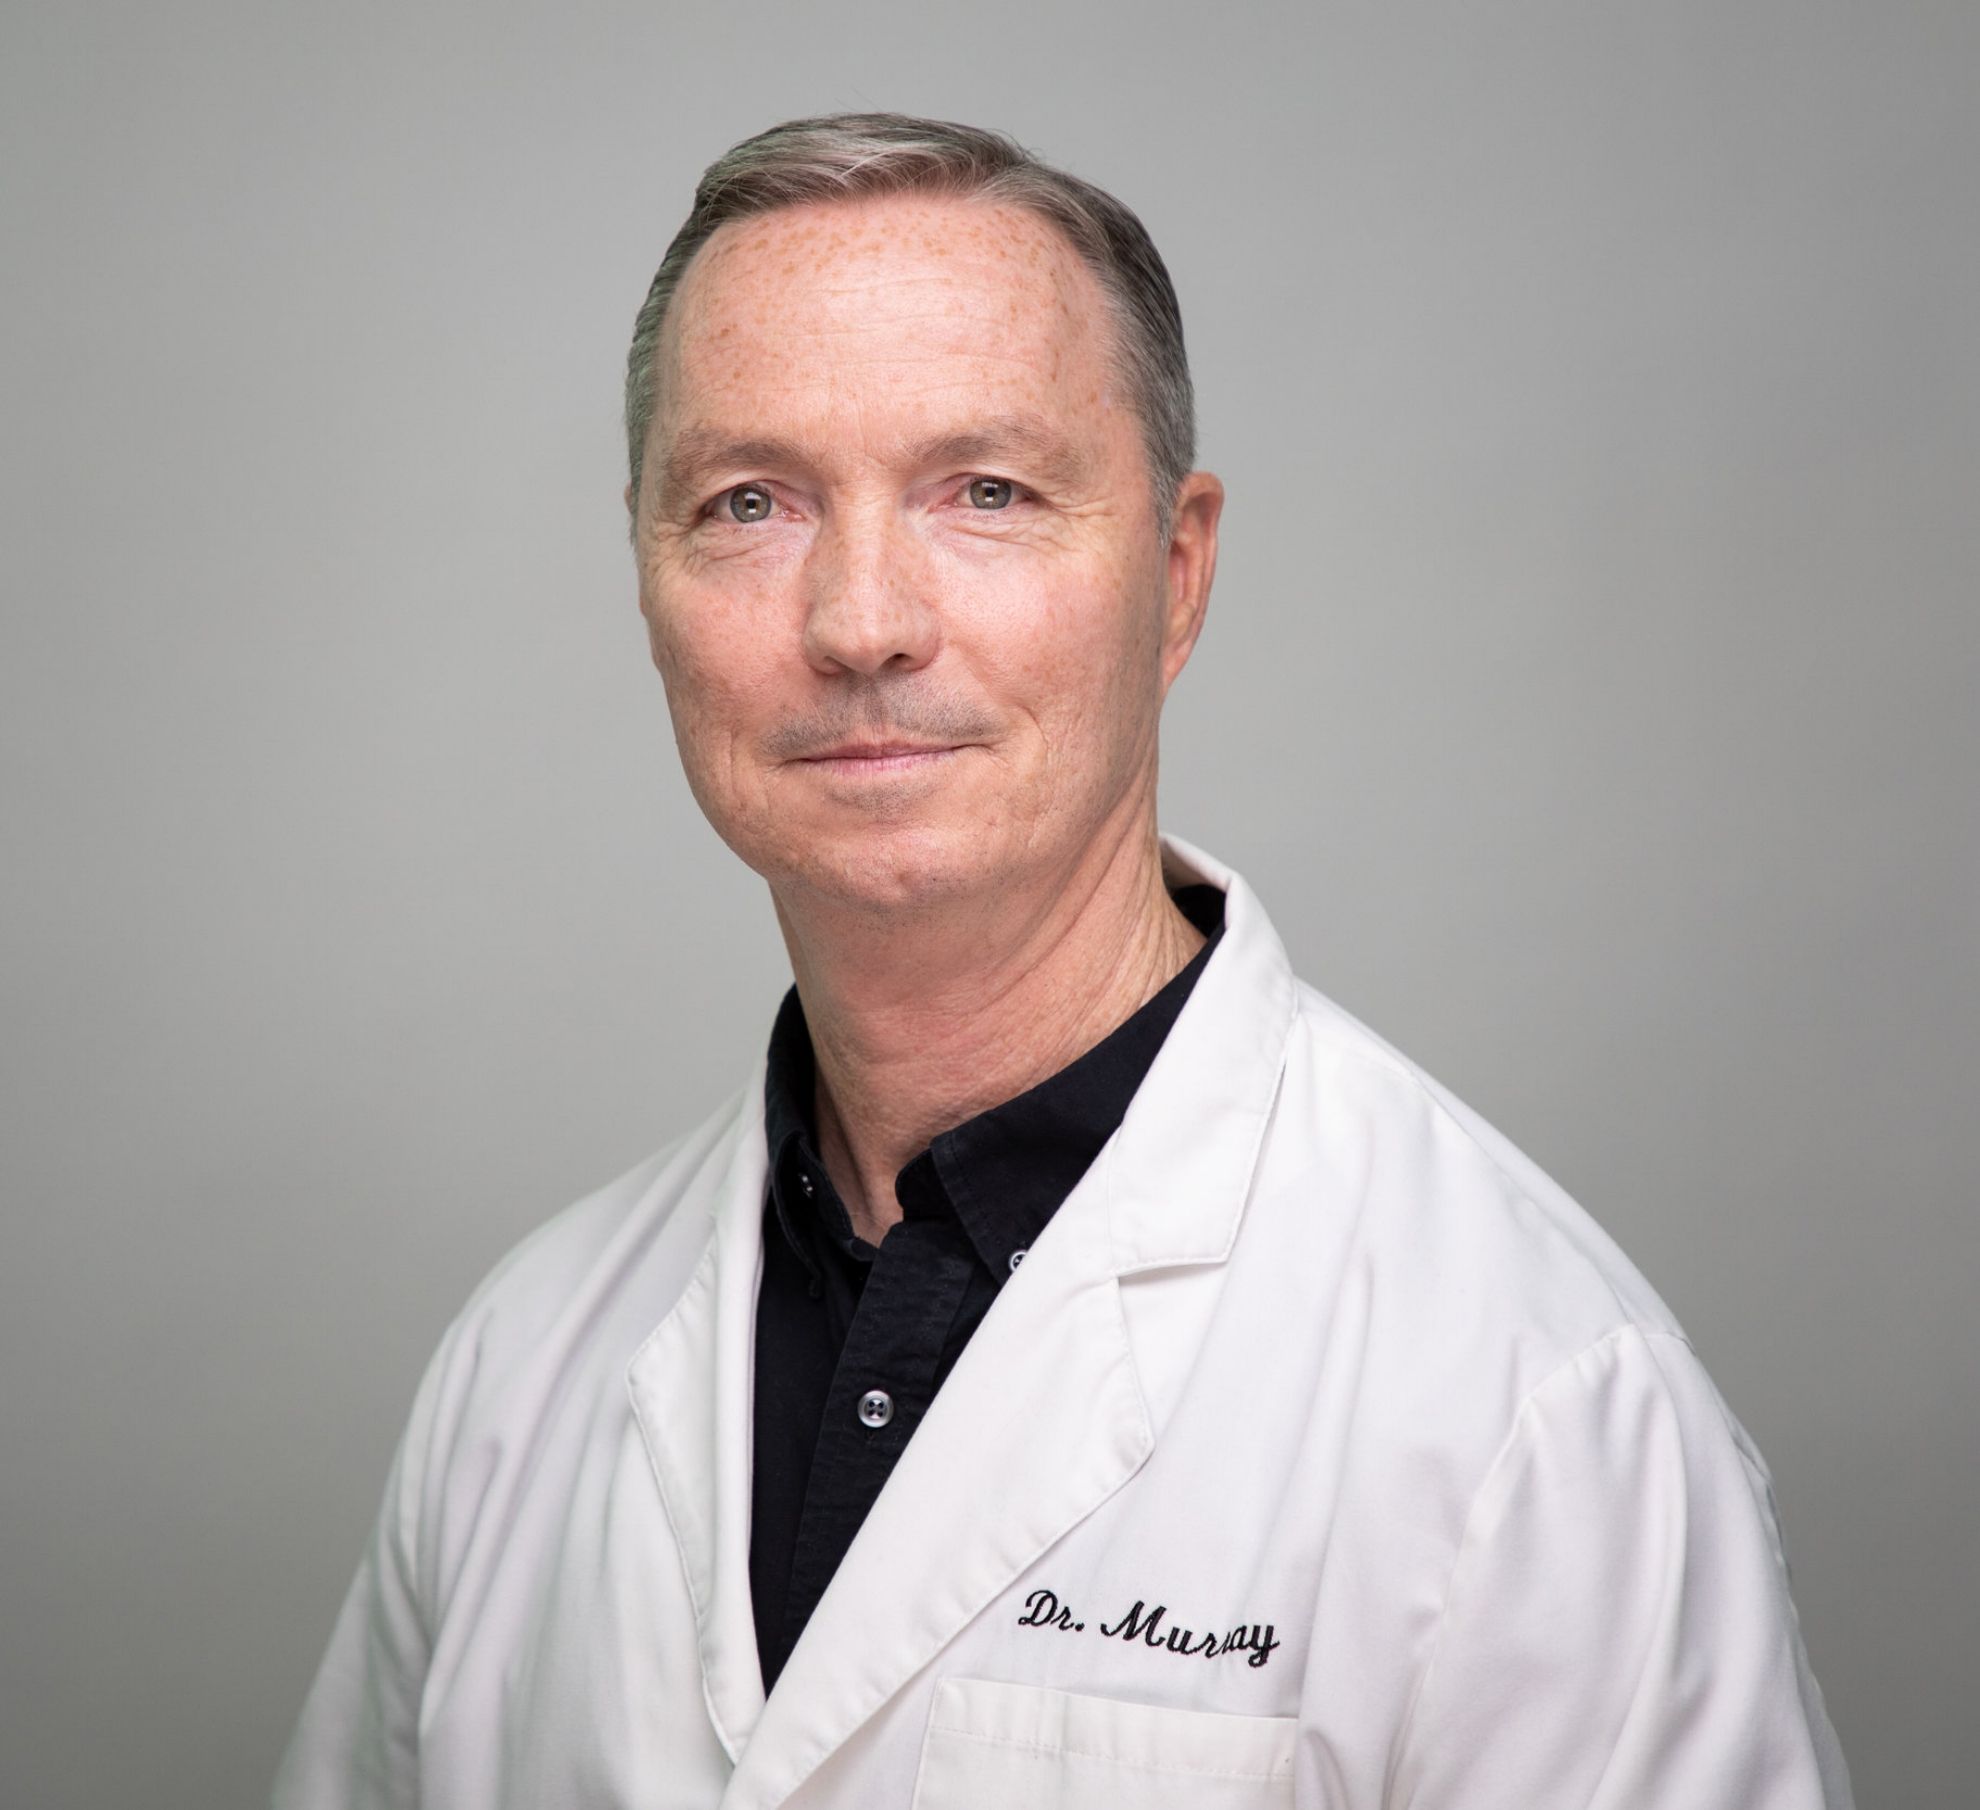 Dr. Brendan Murray - Dr. Brendan Murray has experience specializing as a sports medicine chiropractic physician for over 30 years. From volunteering at high school football and local sporting events for decades to being the former Co-Chair of the Medical Board for the U.S.A. Olympic Weightlifting Team, Dr. Murray has treated a wide variety of sports related injuries.Whether traveling around the world treating athletes or in his Santa Monica clinic, there are common themes among Dr. Murray's experience as a physician; he analyzes the source of all issues before prescribing treatment and caring for patients is his first priority. Making sure his patients leave feeling educated on their conditions, Dr. Murray holds himself to the highest standard to keep up with the latest research of all topics within his profession.Dr. Murray earned his Doctor of Chiropractic degree from Cleveland Chiropractic College-Los Angeles in 1988, where he graduated Magna Cum Laude. He was part of the first Diplomate American Chiropractic Board of Sports Physicians classes accredited by the American Chiropractic Board of Sports Physicians™ in 1995. He founded The Institute for Spine and Sports Care in Santa Monica in 2006 and has enjoyed practicing there ever since.